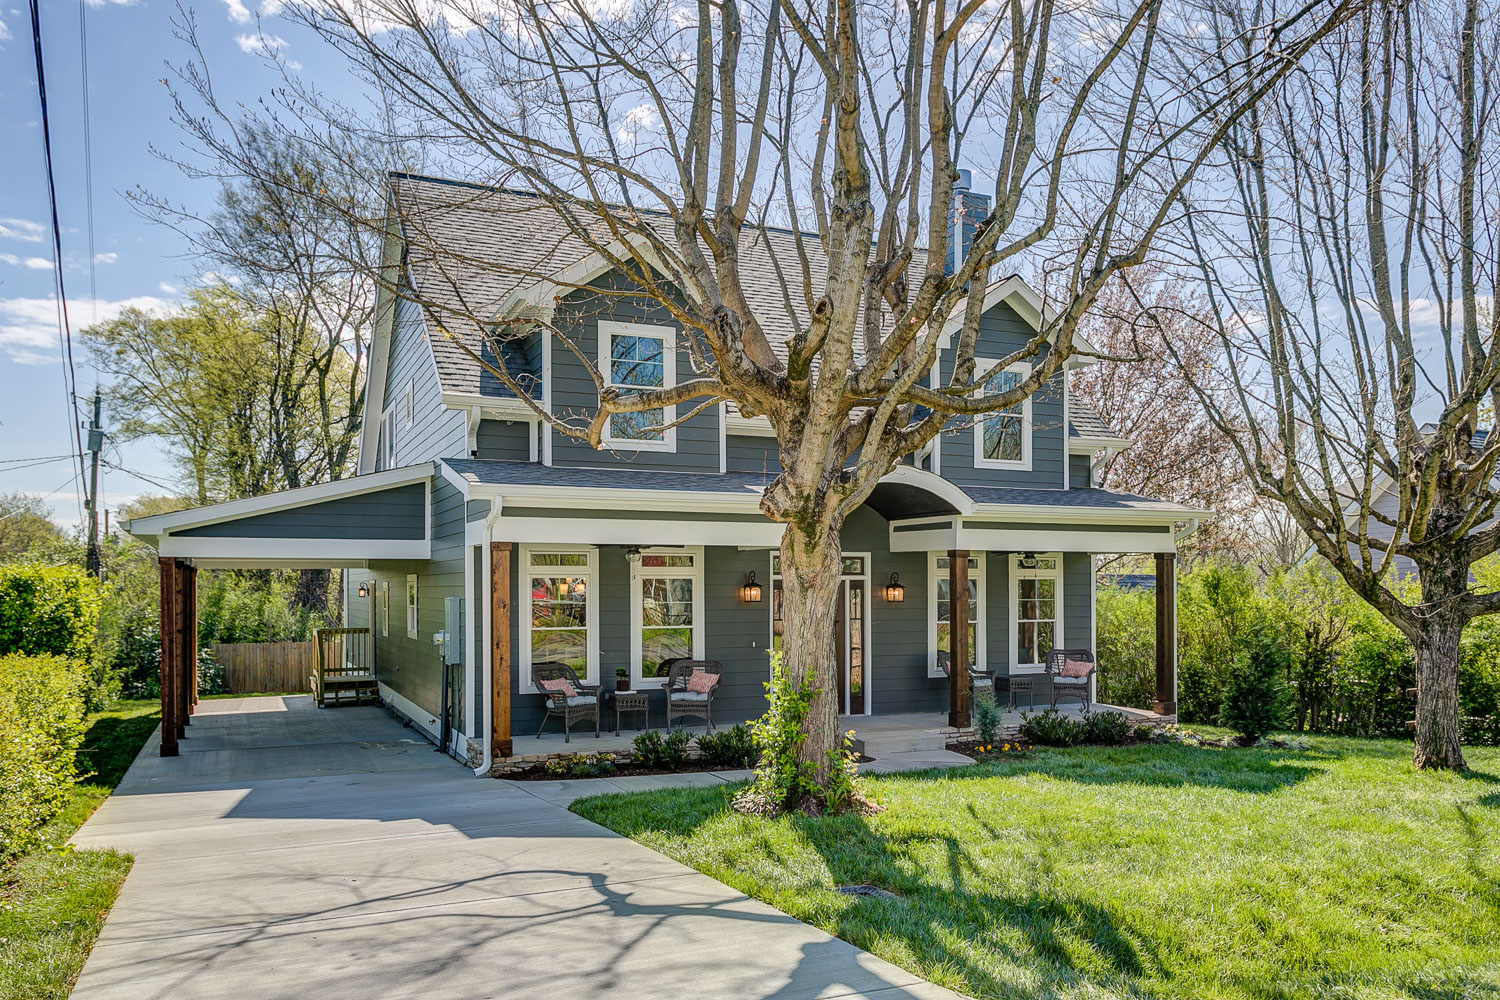 Craftsman Inspired Build in downtown Franklin